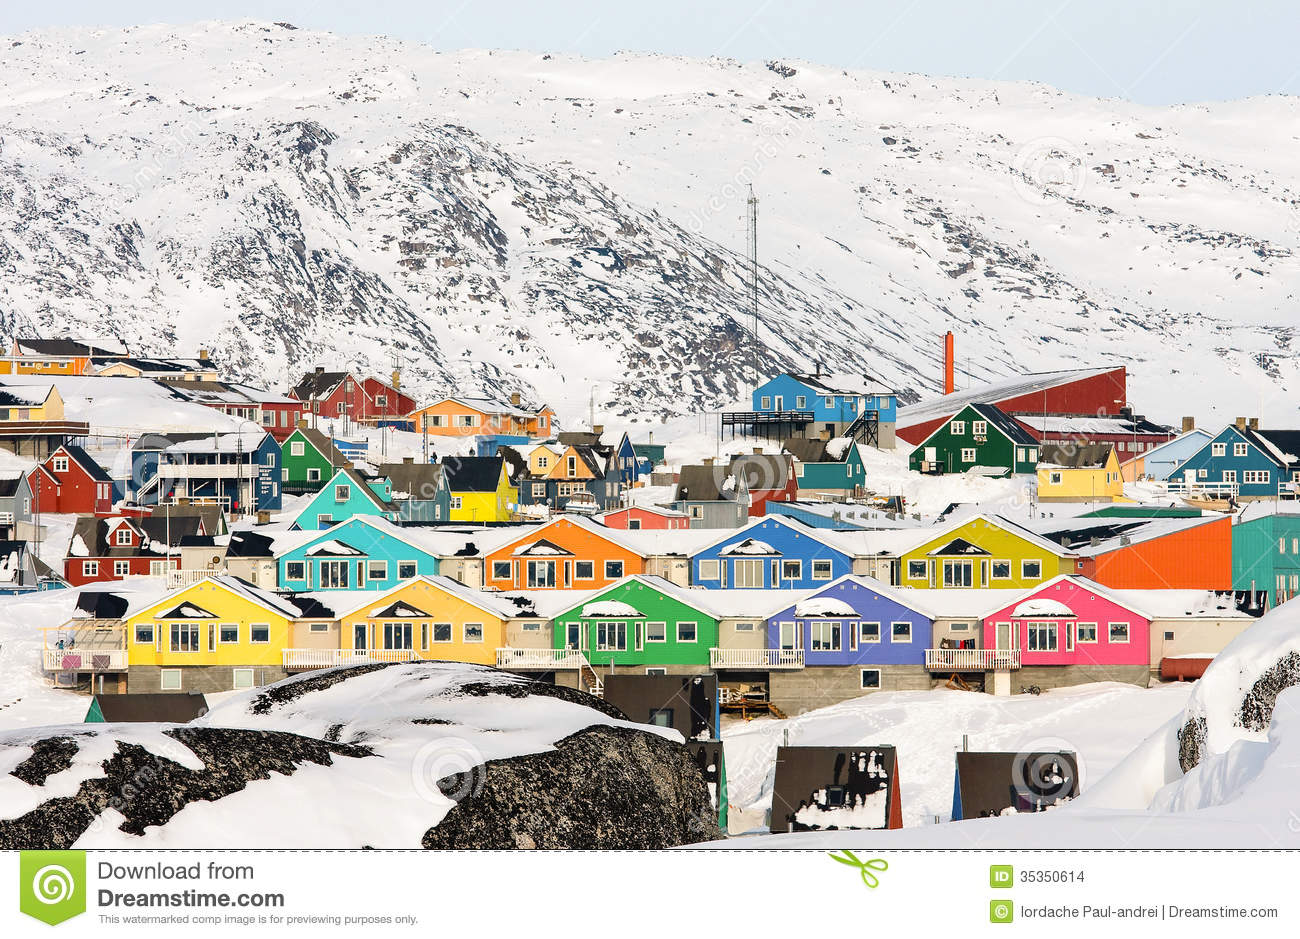 Houses painted in vivid colors make the arctic settlement seem joyful.